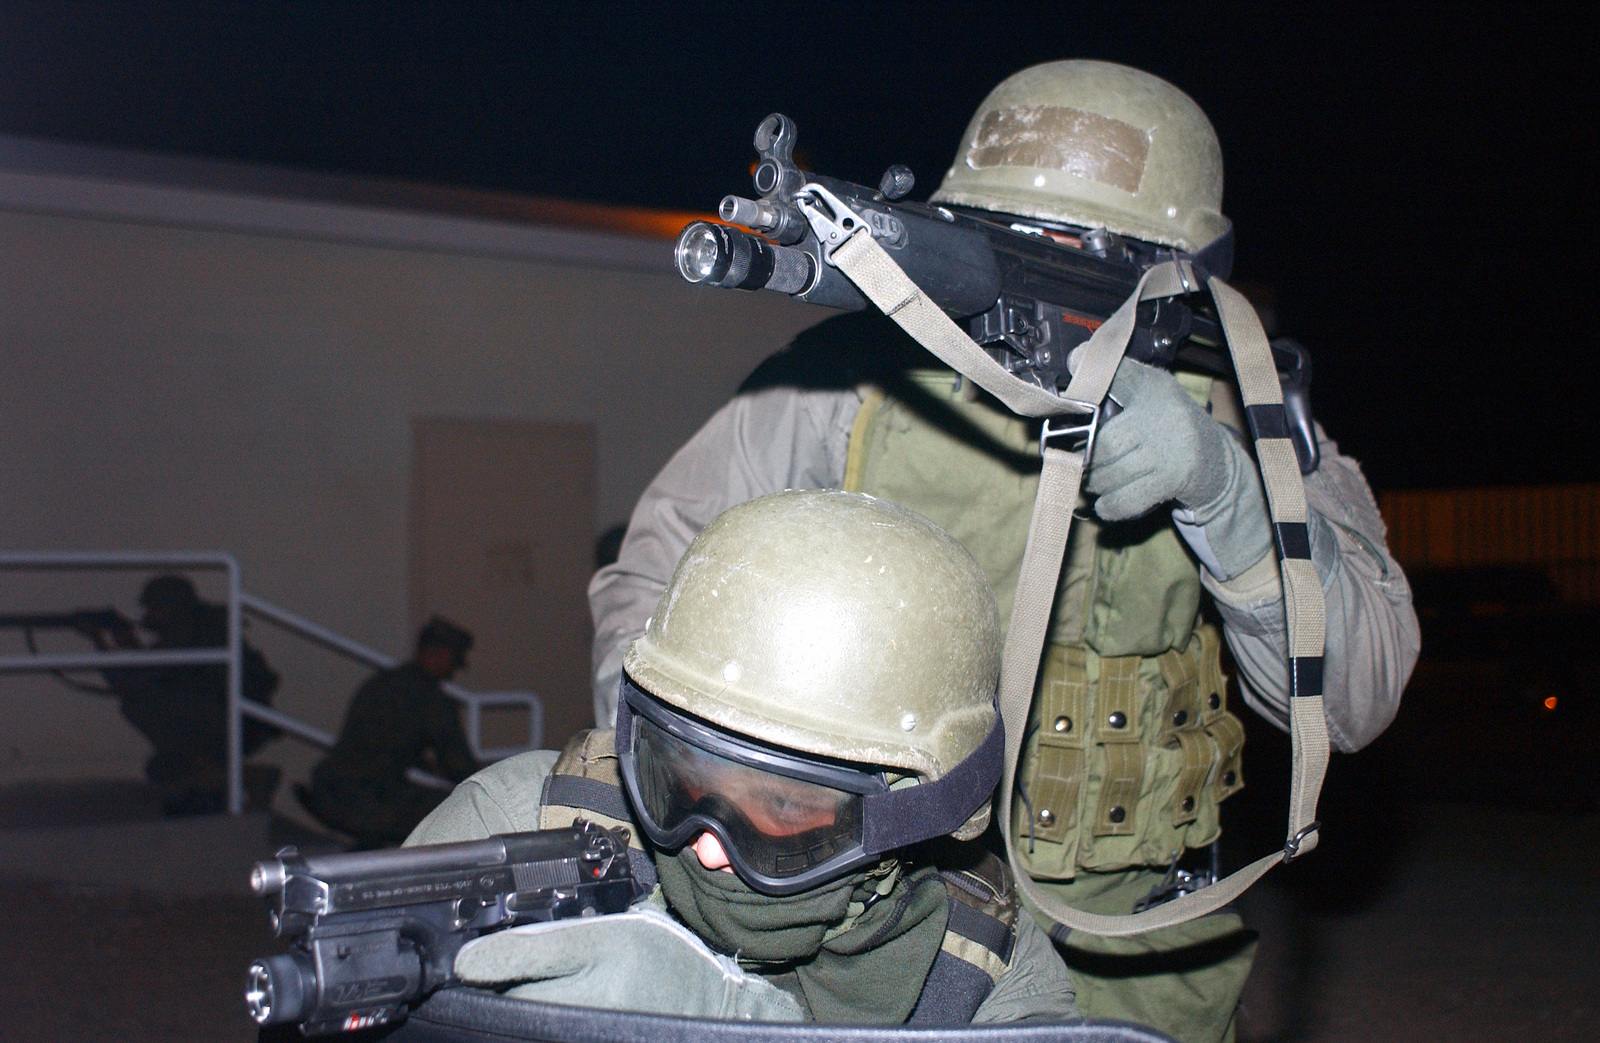 US Navy (USN) Hospital Corpsman Third Class (HM3) Thomas J. Cupo (foreground), is armed with a 9mm handgun, while US Marine Corps (USMC) Corporal (CPL) Stephen L. Clogston, provide cover with a Heclker and Koch 9mm MP5-N sub-machine gun. Both are members of the Marine Special Reaction Team (SRT), participating in a simulated bank robbery scenario at the Marine Air Ground Combat Center in Twentynine Palms, California (CA). The annual training event, conducted by the Provost Marshals Office, is designed to train Military Police and Criminal Investigators proper procedures when dealing with a hostage situation